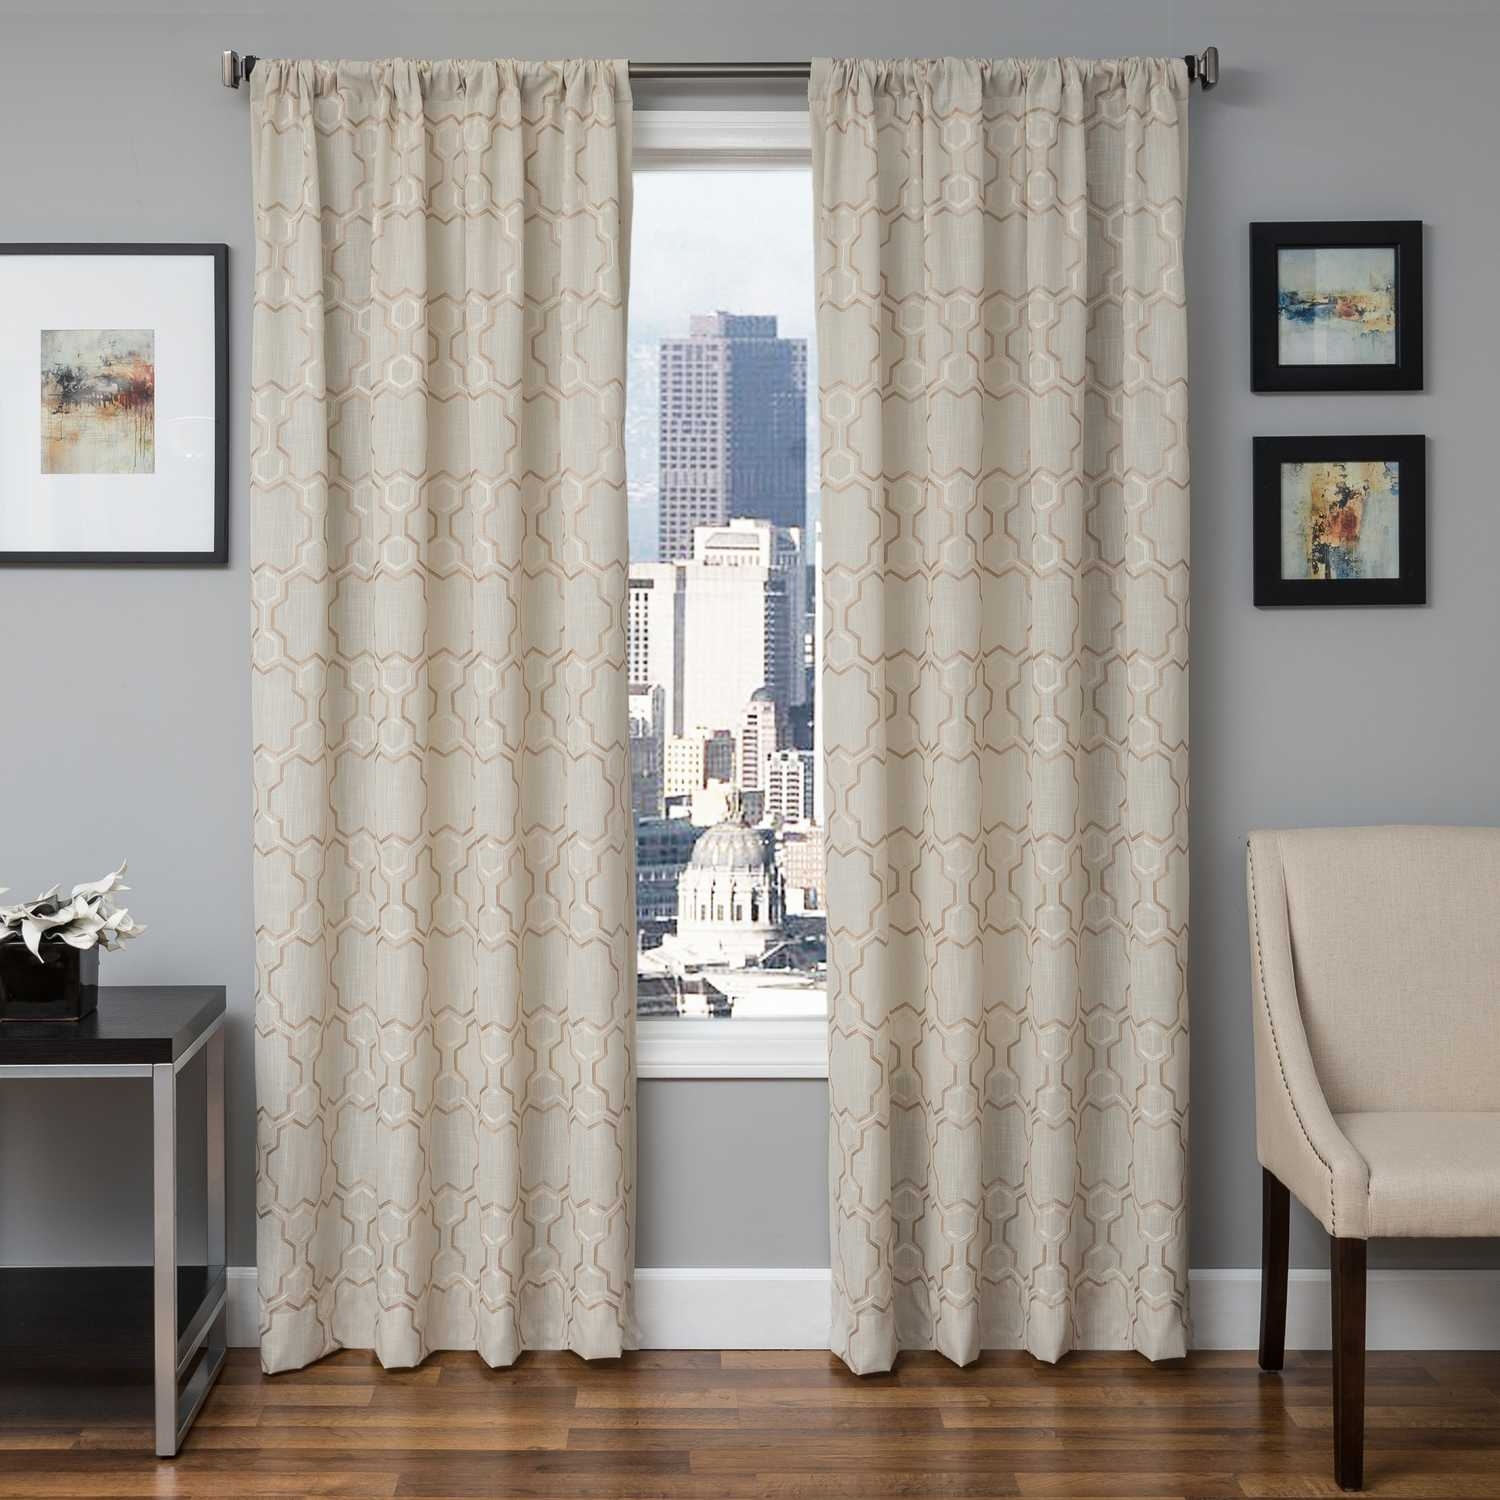 Softline Home Fashions Livorno Drapery Panels Color: Champagne White Swatch  Available.